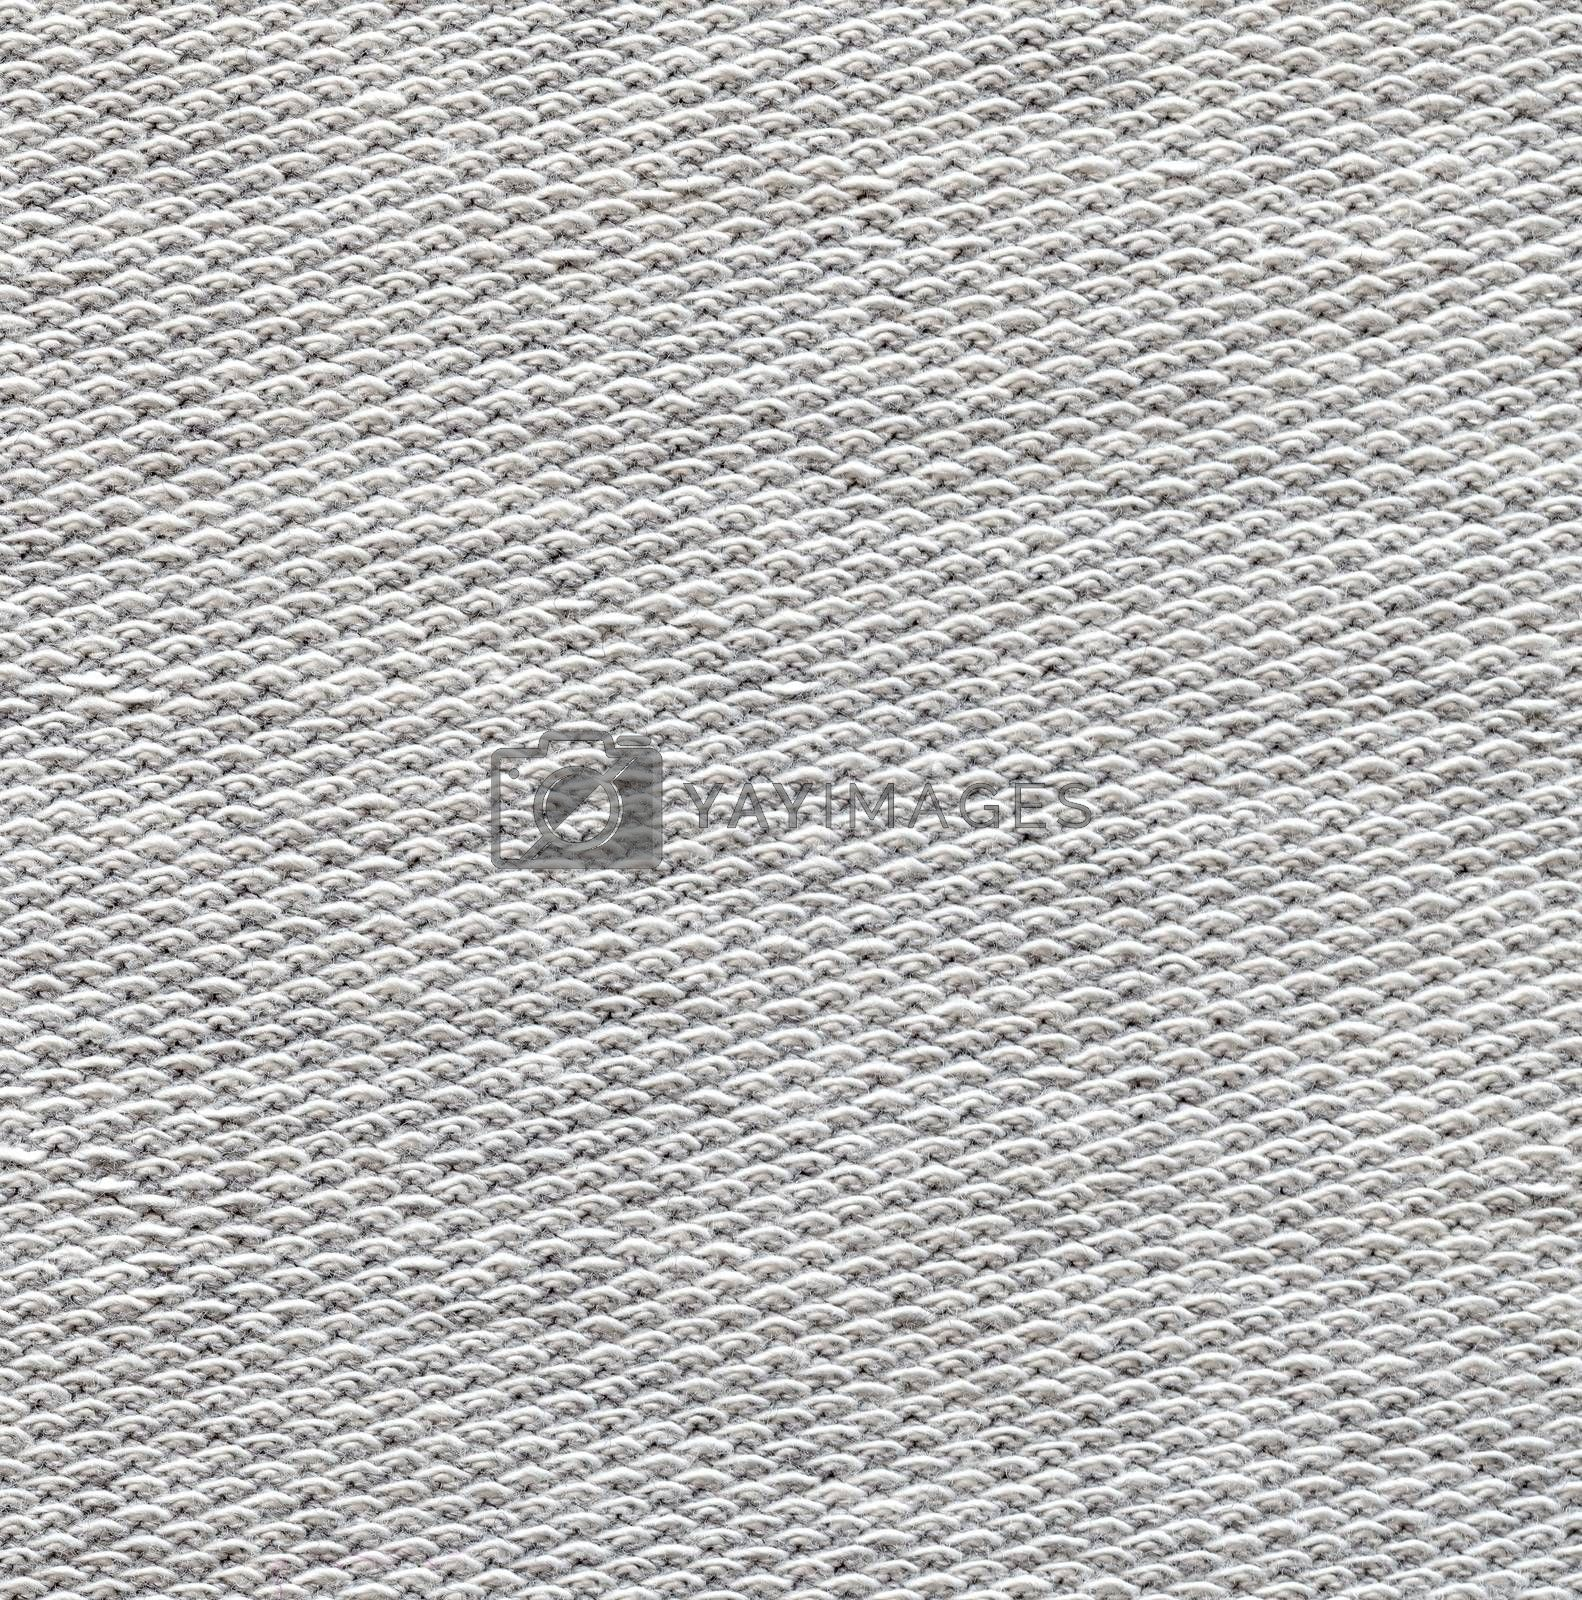 Fabric texture. Light gray color textile background